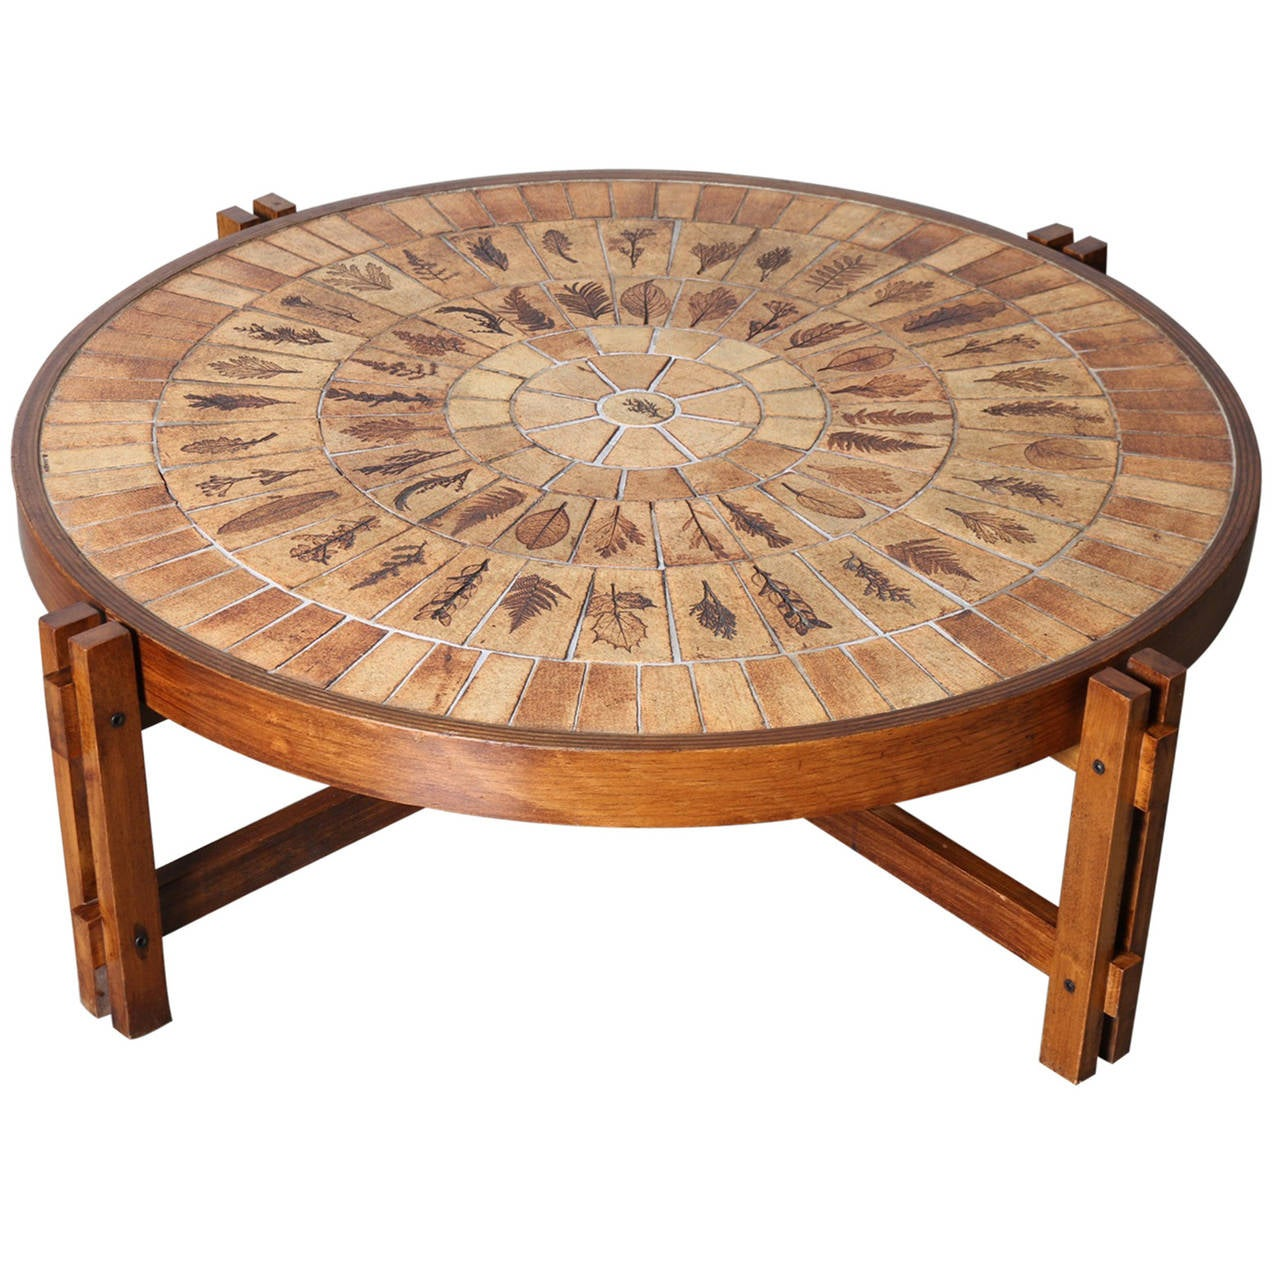 roger capron round coffee table pressed leaves in ceramic. Black Bedroom Furniture Sets. Home Design Ideas